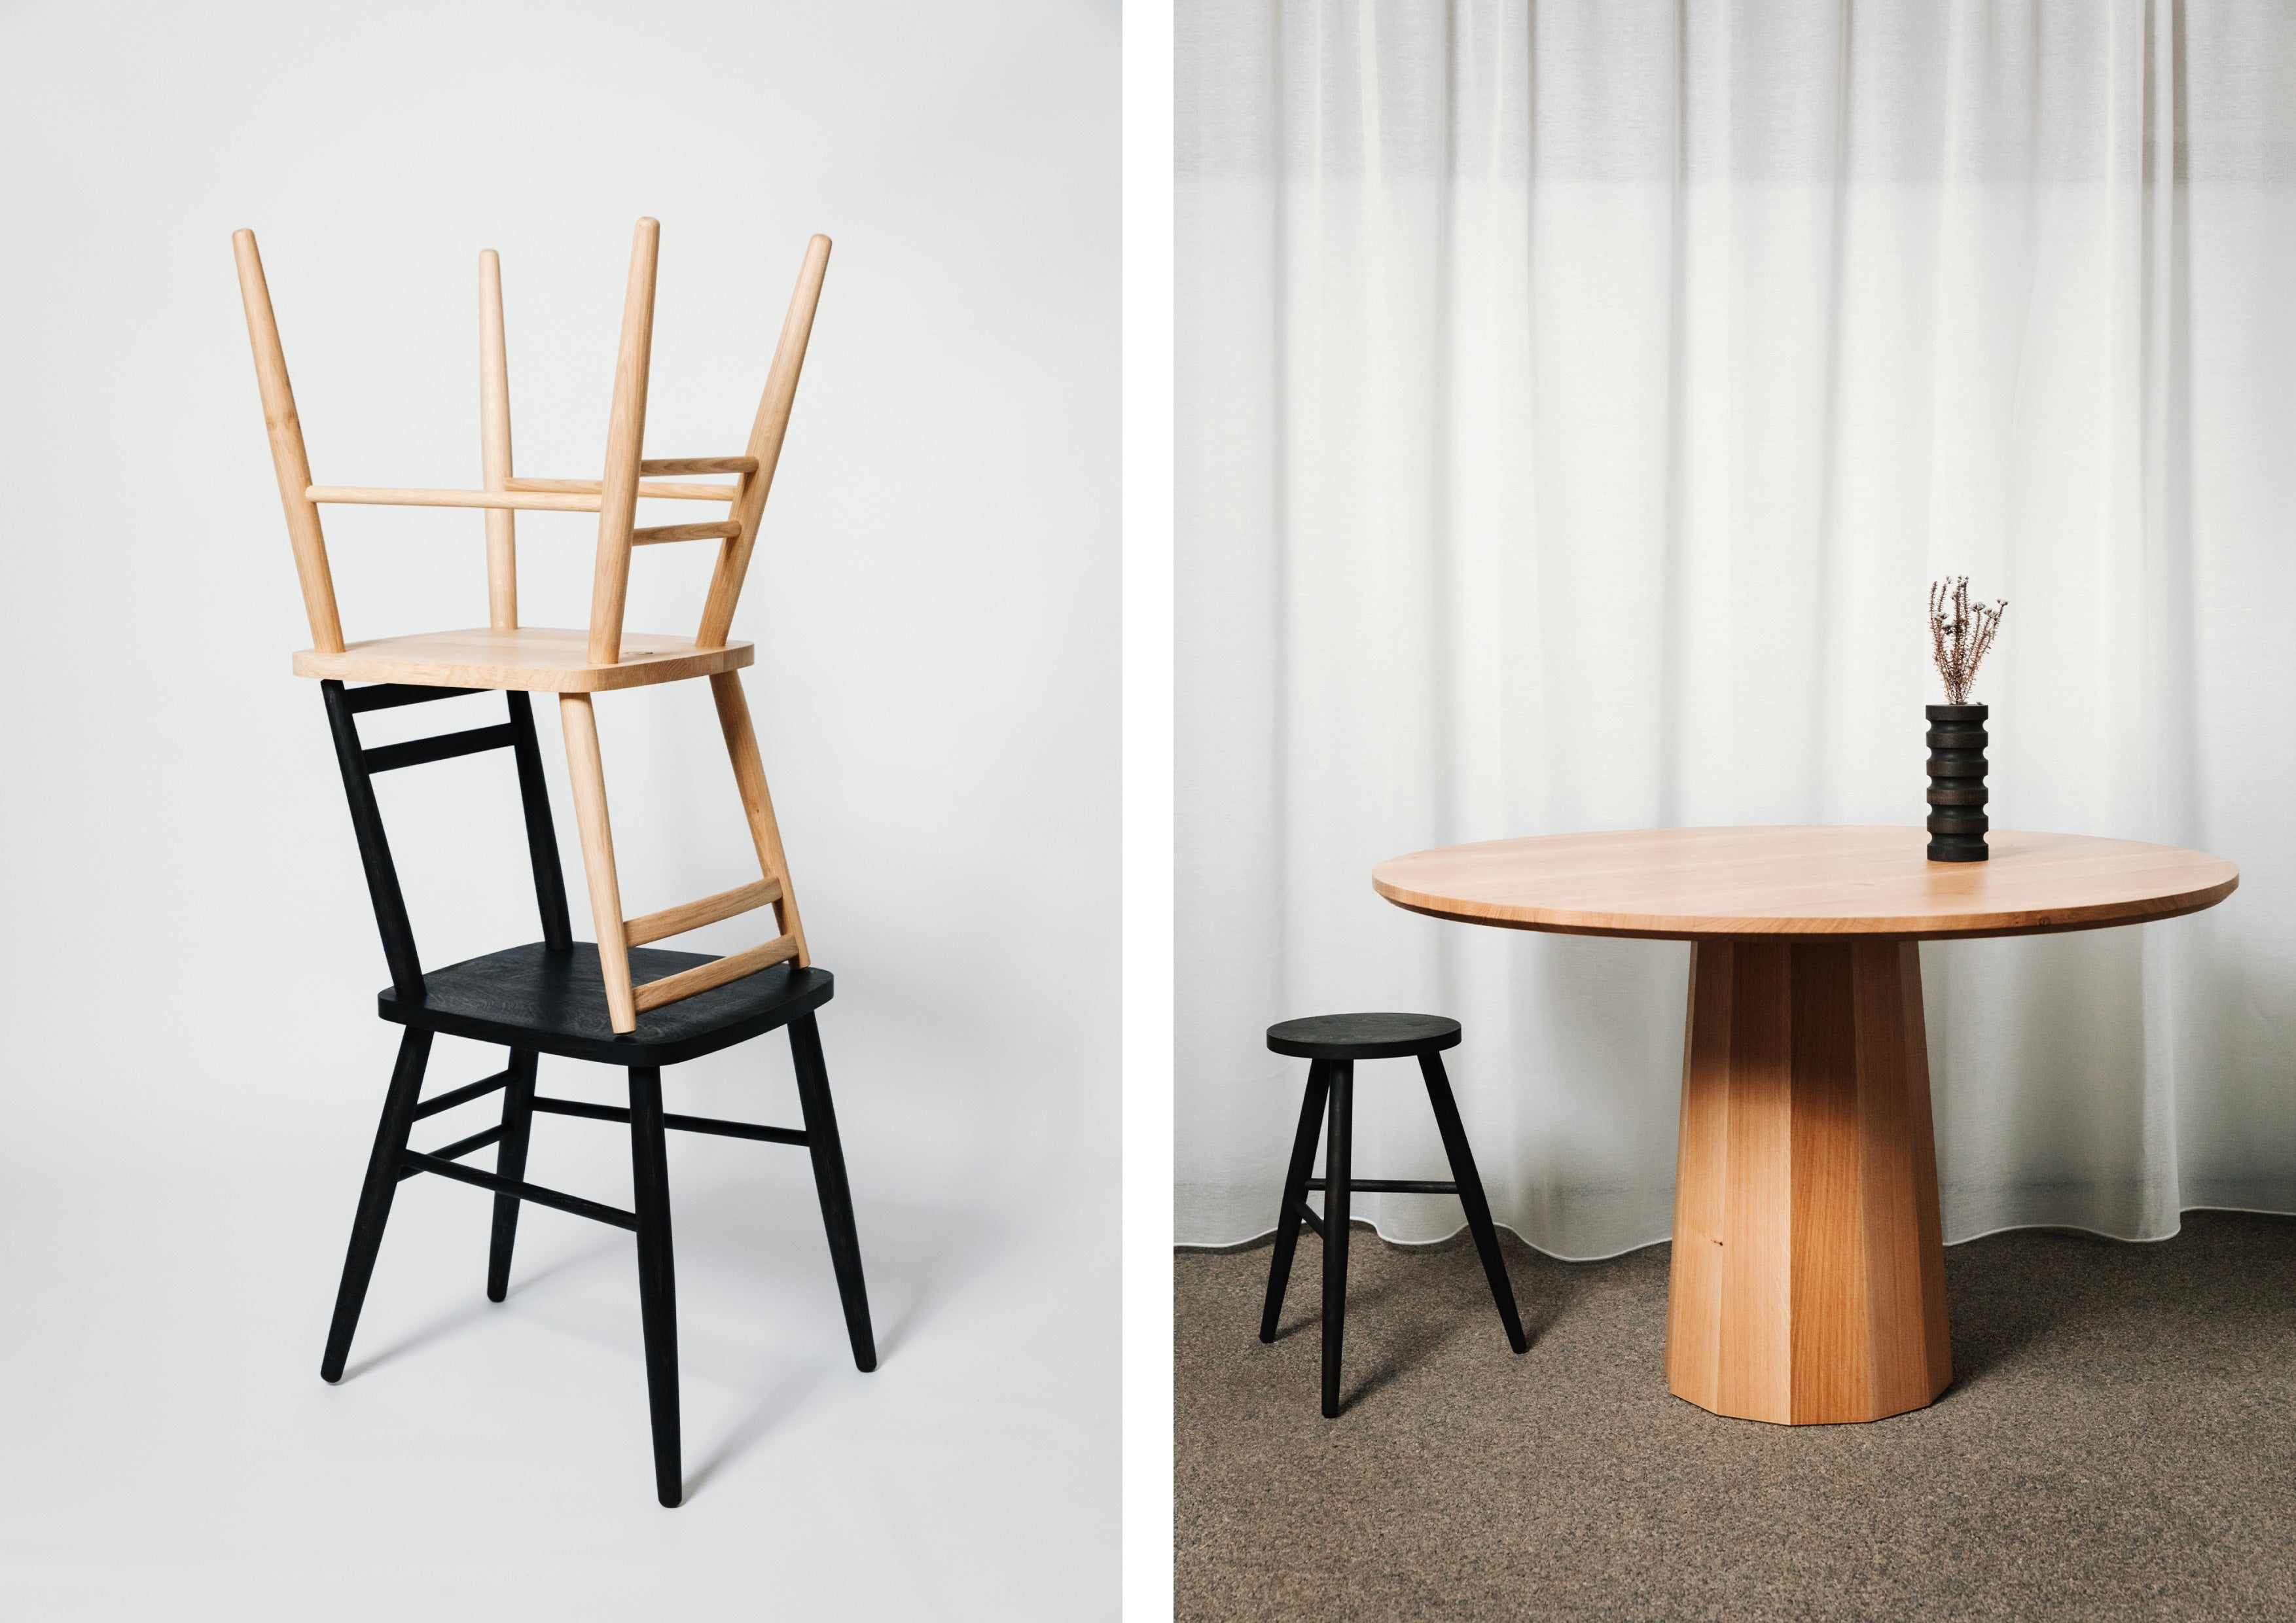 Left: Parlour Chair in Natural & Ebonised Oak. Right: Polygon Pedestal Dining Table